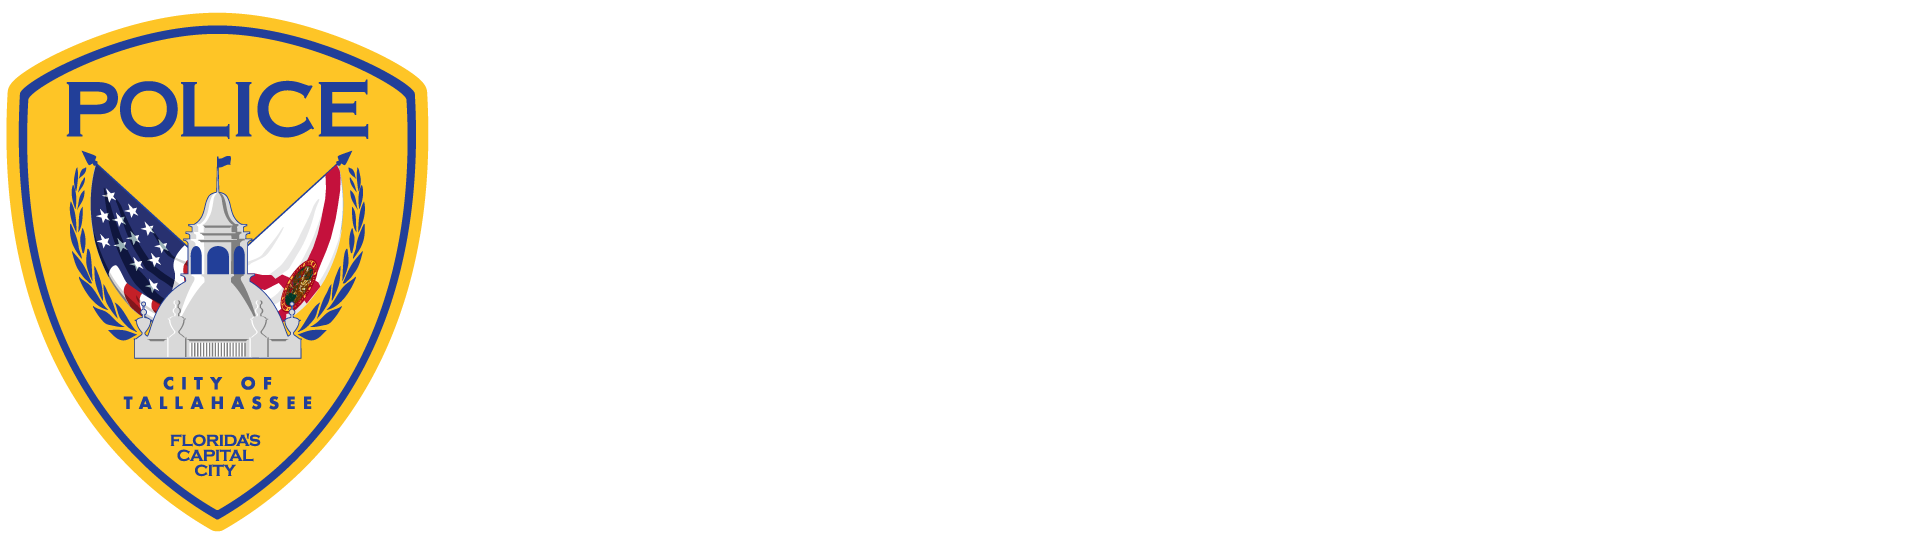 Tallahassee Police Department | Public Safety